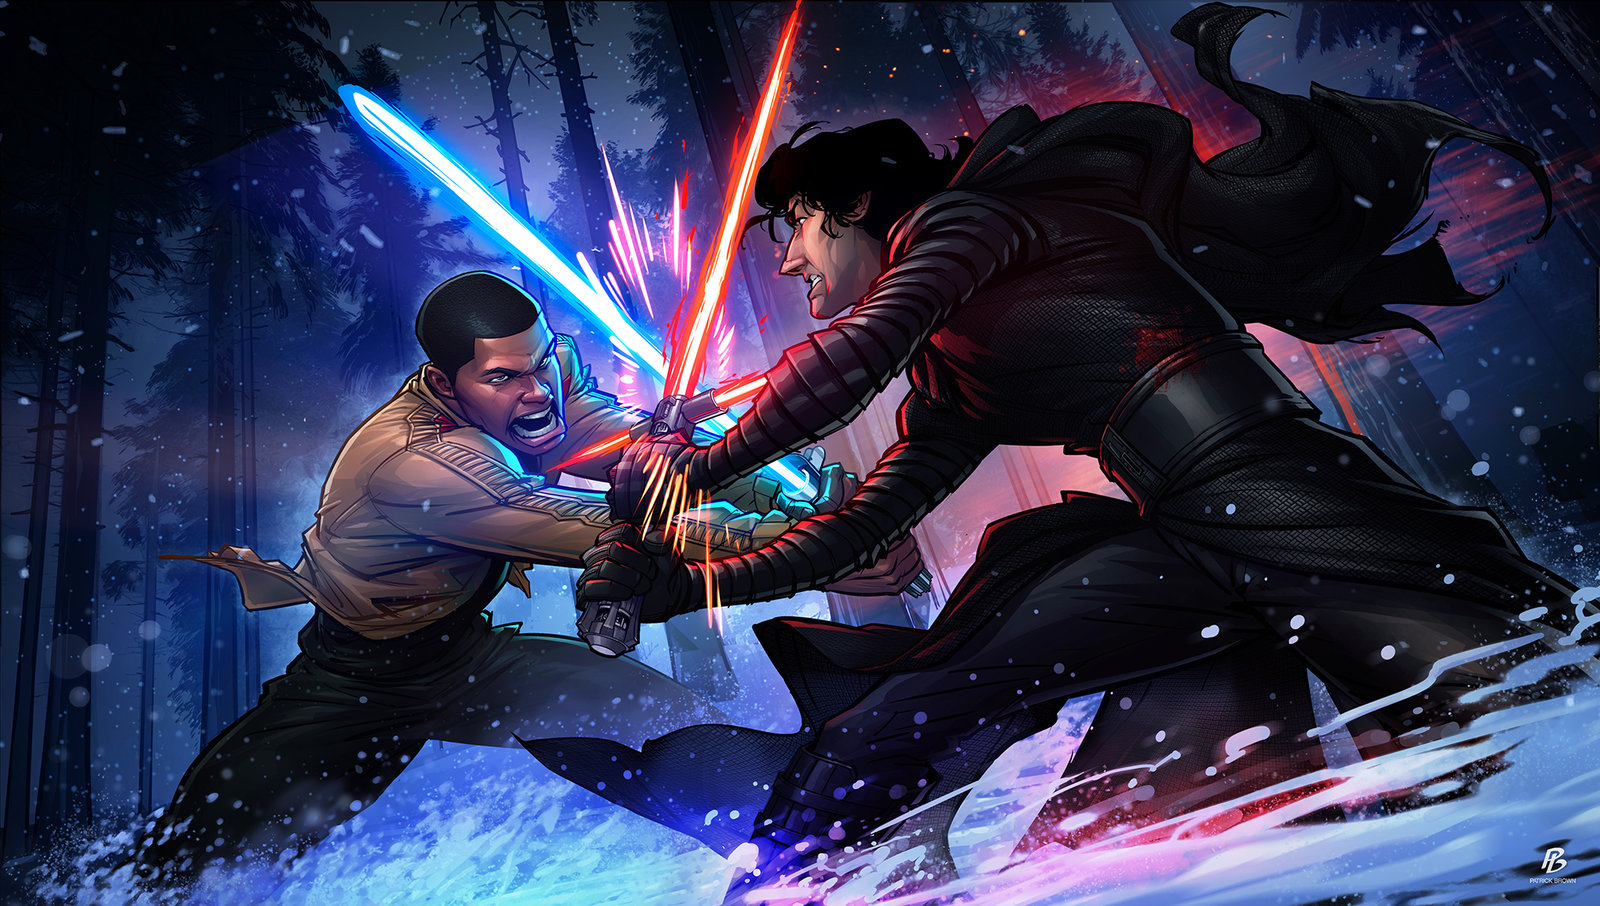 star_wars__the_force_awakens_by_patrickb